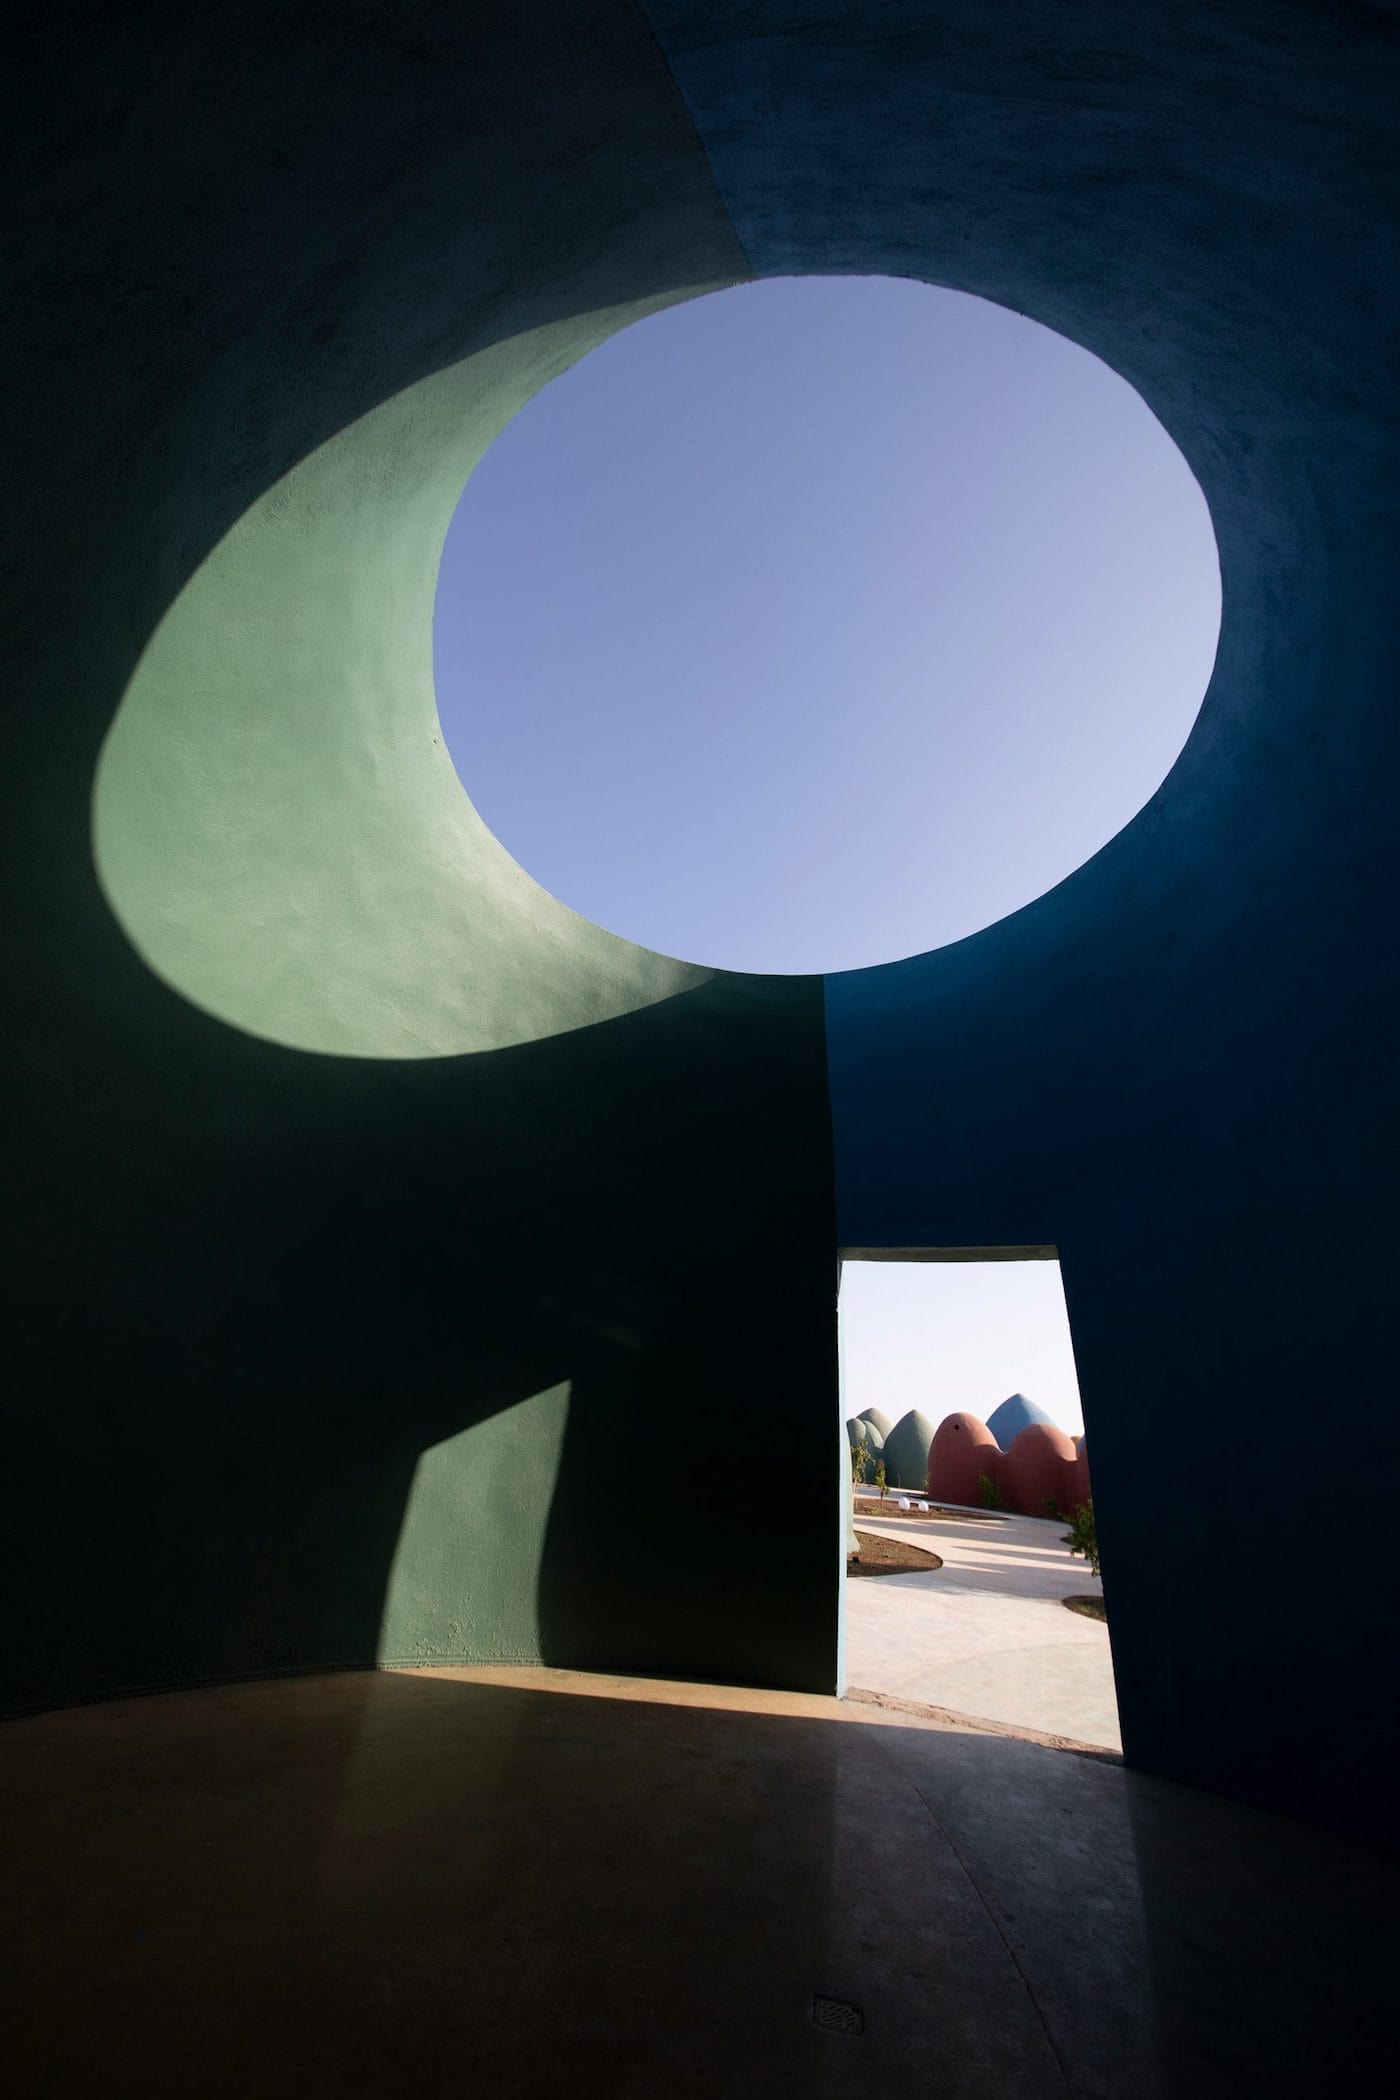 Shadows on round window in rammed earth dome